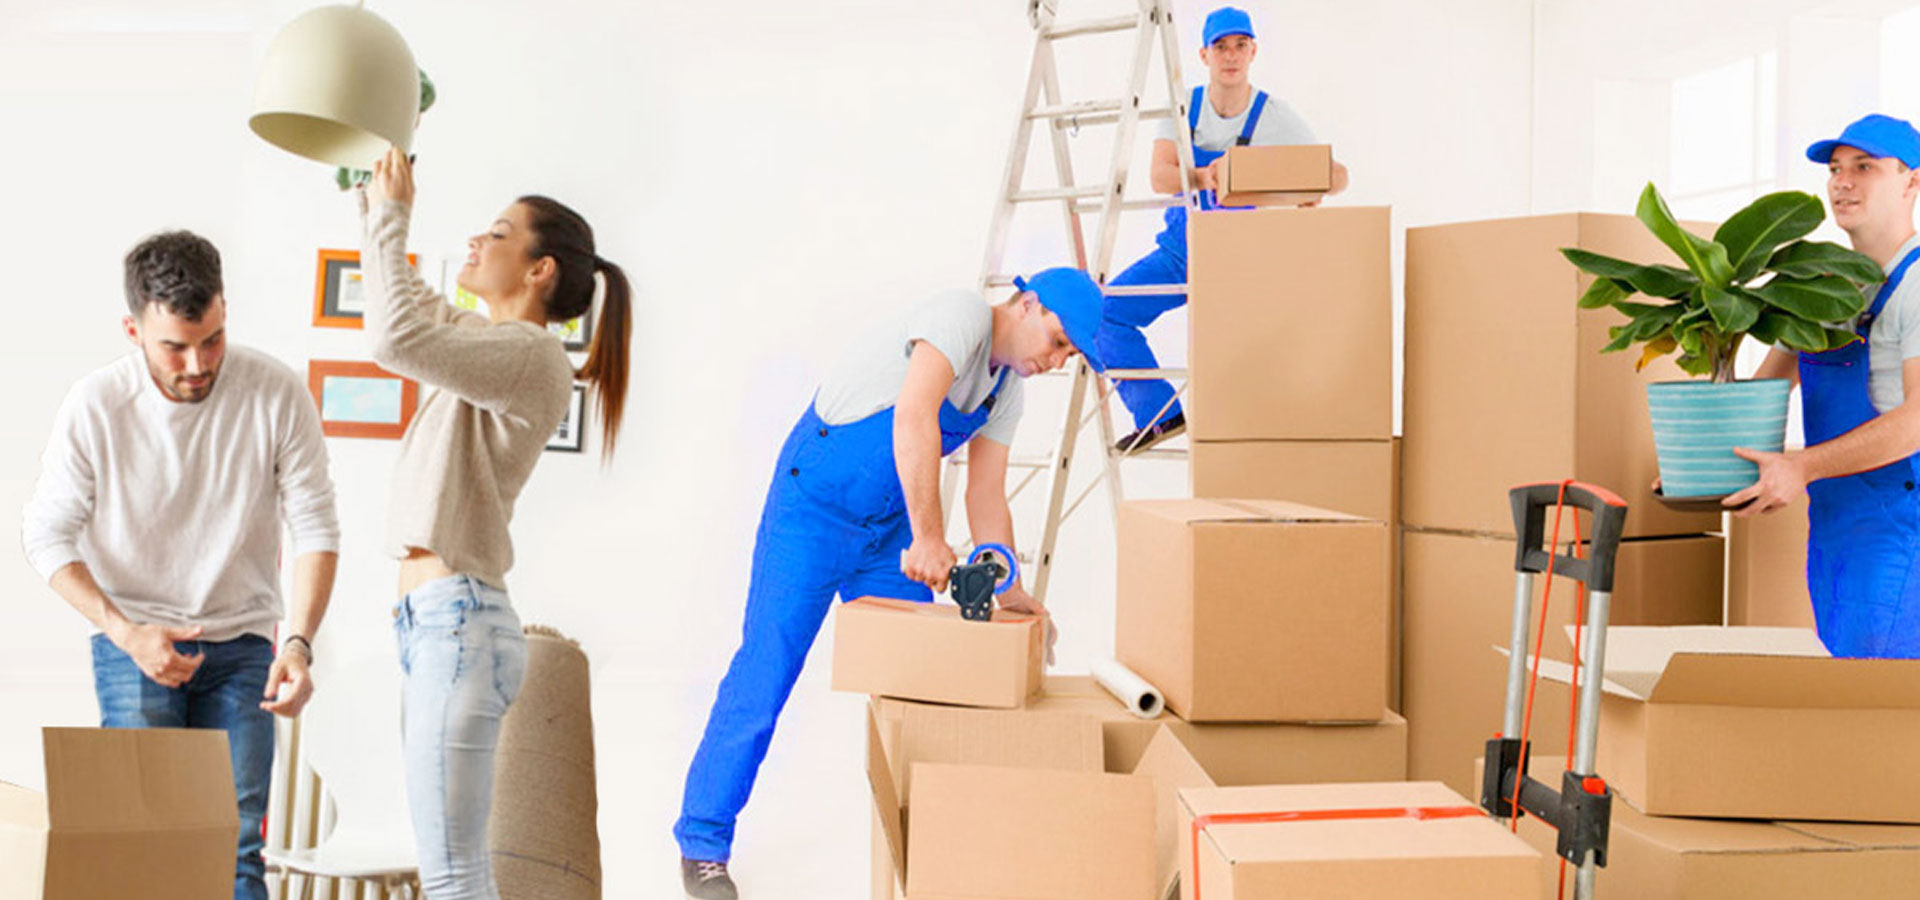 Siwach Packers And Movers in Ludhiana @9357116596 for Safe Removable  Service.